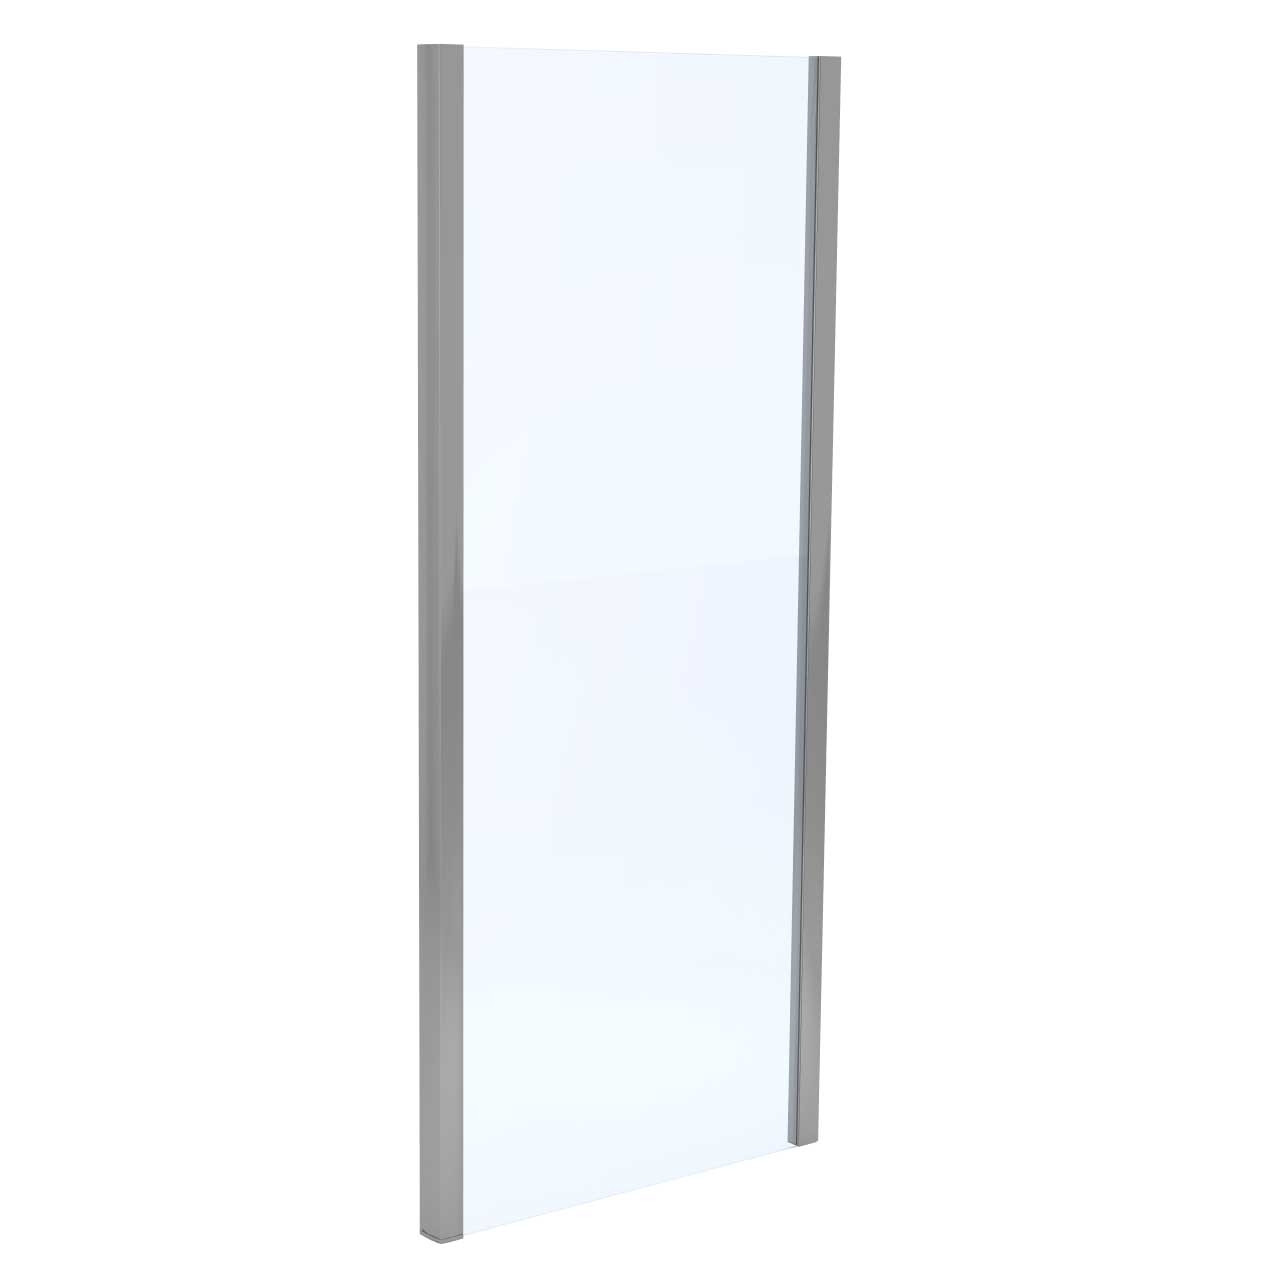 Series 6 1700 x 800 Sliding Door Enclosure